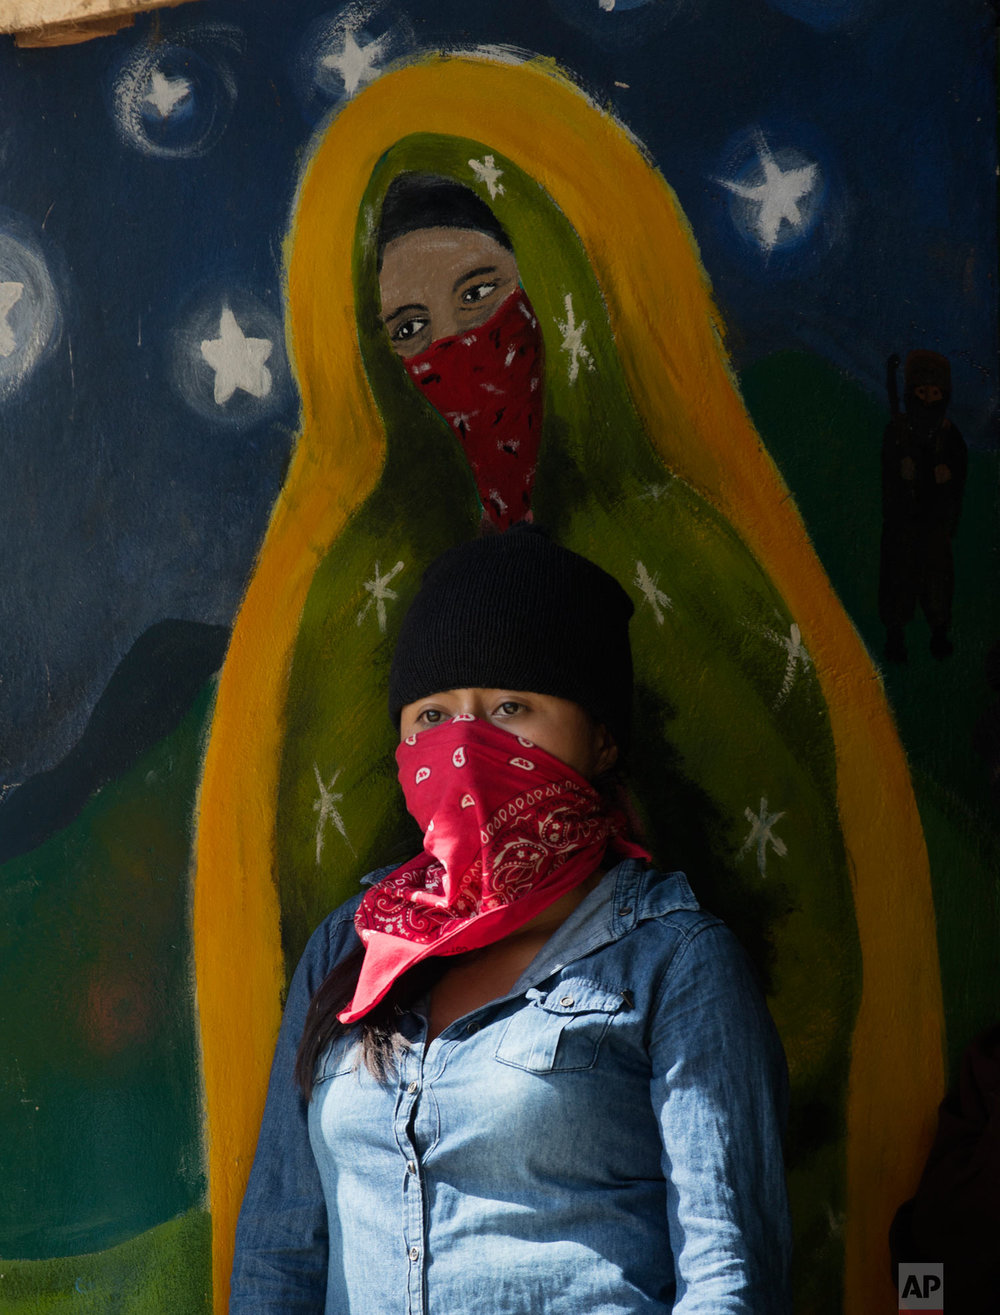 A masked, female member of the Zapatista National Liberation Army (EZLN) stands by a mural depicting a masked version of the Virgin of Guadalupe, at an event marking the 25th anniversary of the Zapatista uprising in La Realidad, Chiapas, Mexico, Jan. 1, 2019. (AP Photo/Eduardo Verdugo)